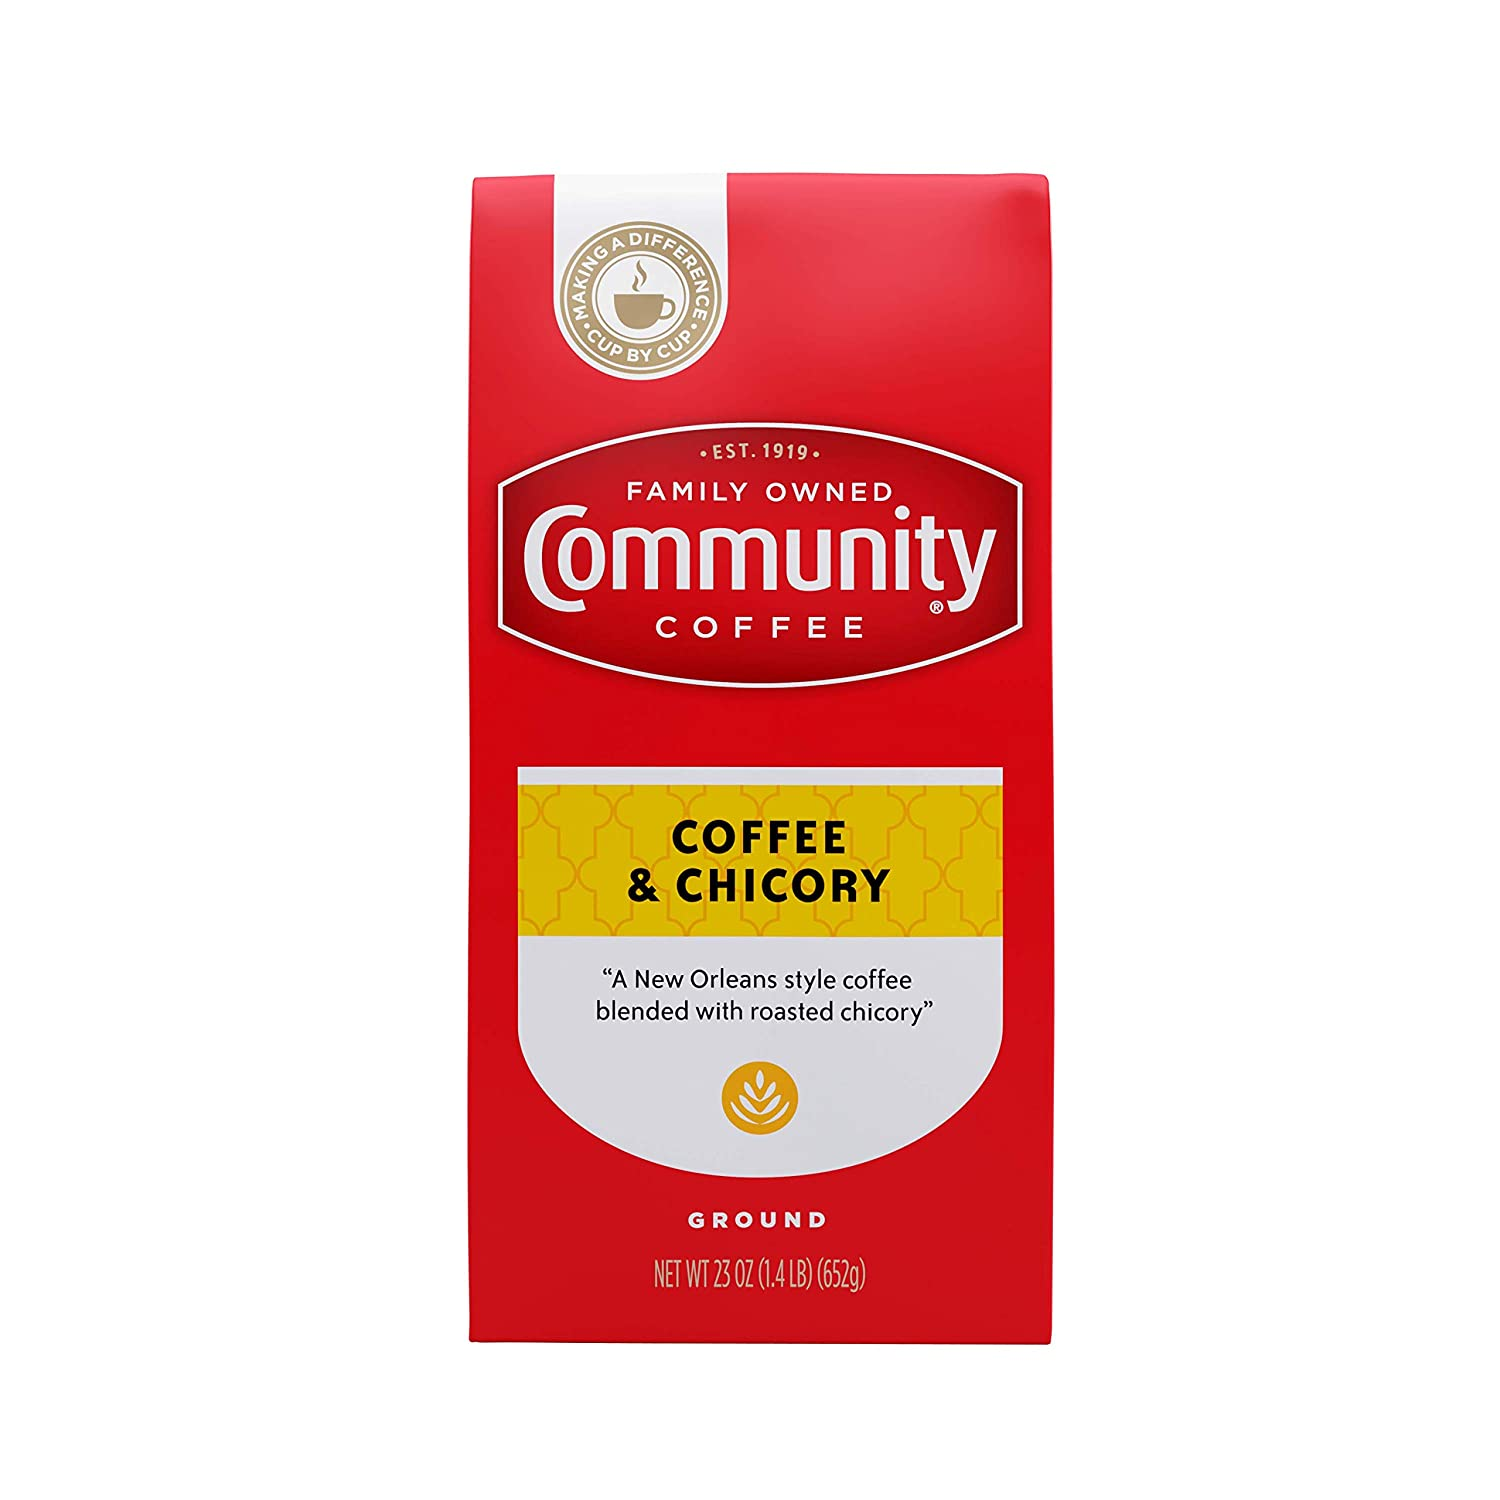 Community Coffee Ground Coffee & Chicory Blend, Ground, 23 oz Bag